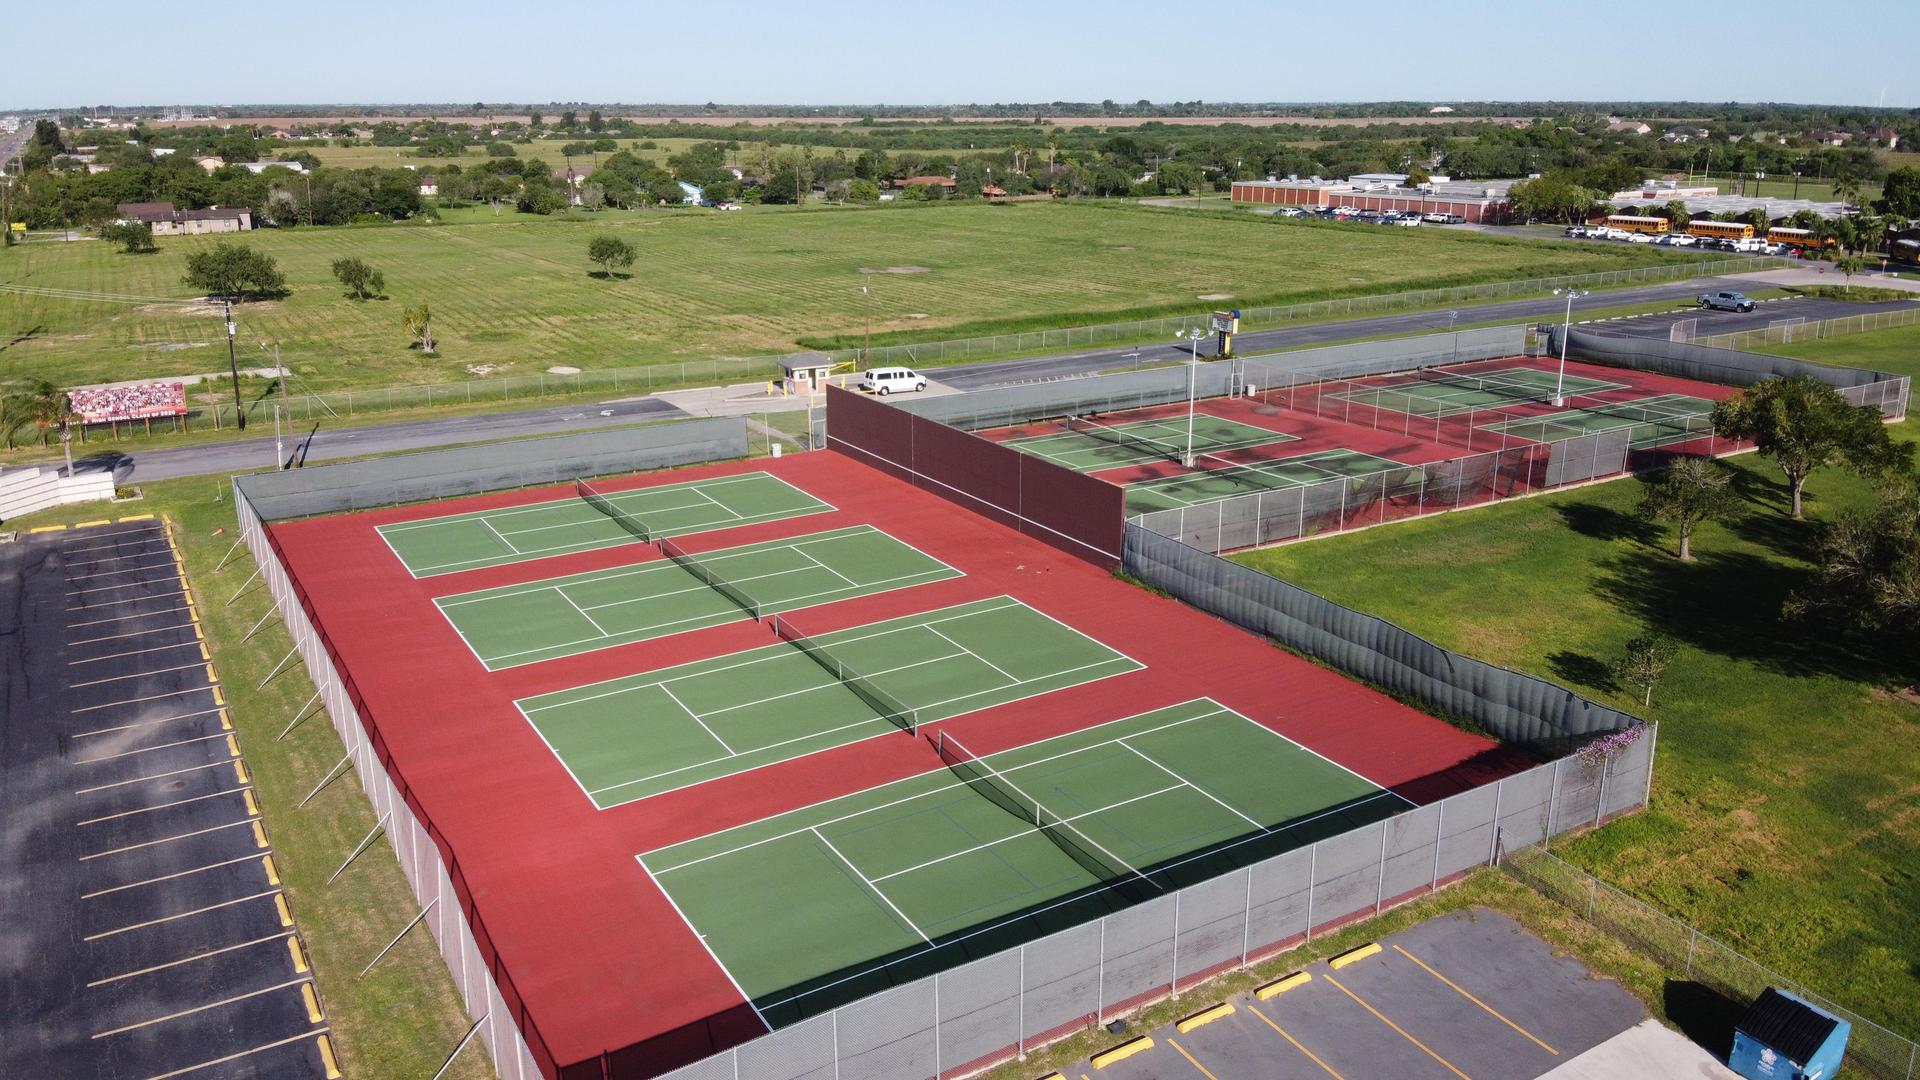 LCMS tennis Courts